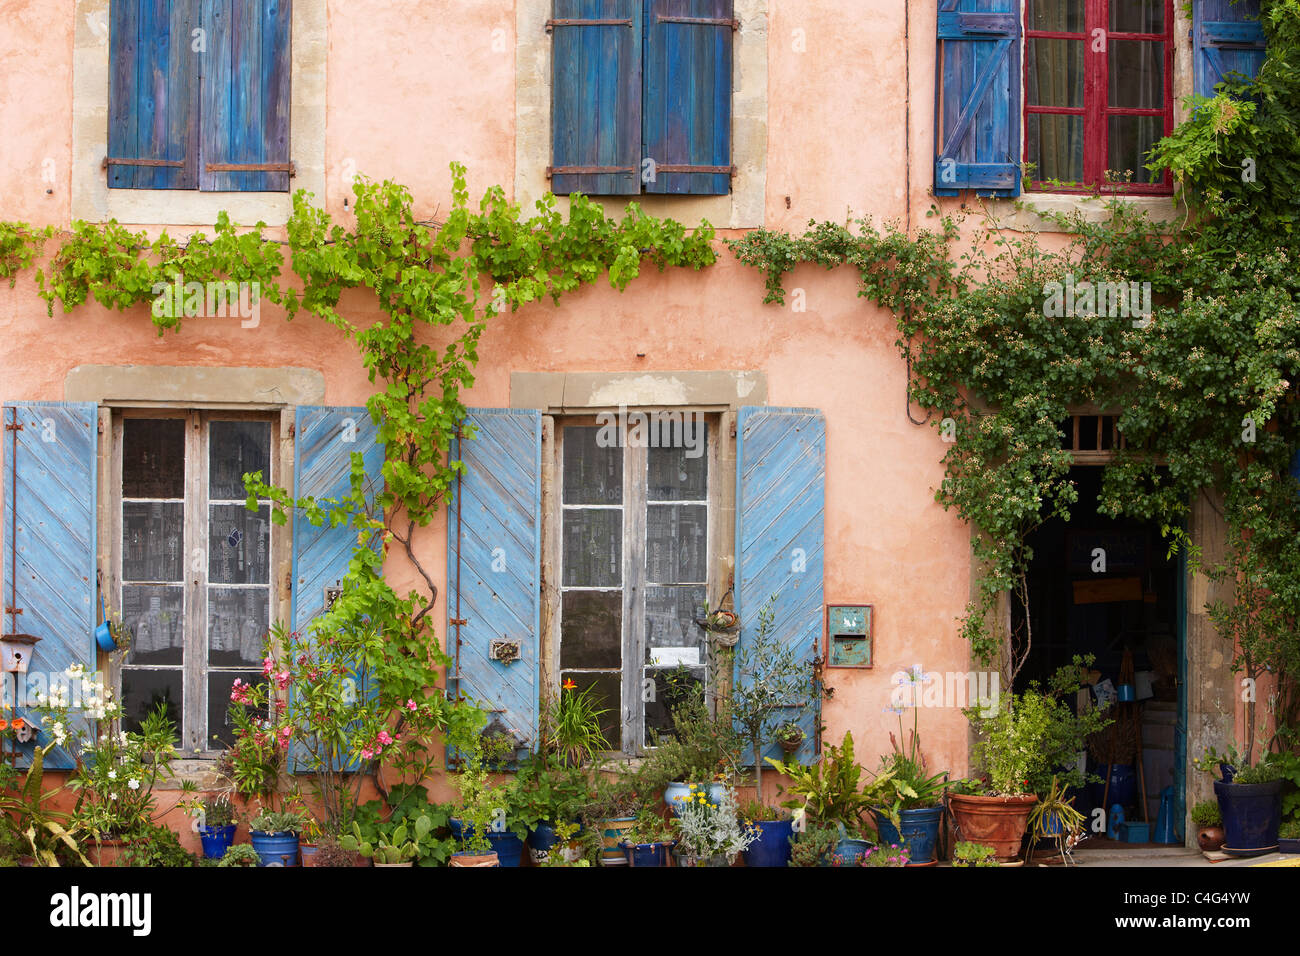 windows in Saint-Félix-Lauragais, Haute-Garonne, Midi-Pyrenees, France - Stock Image